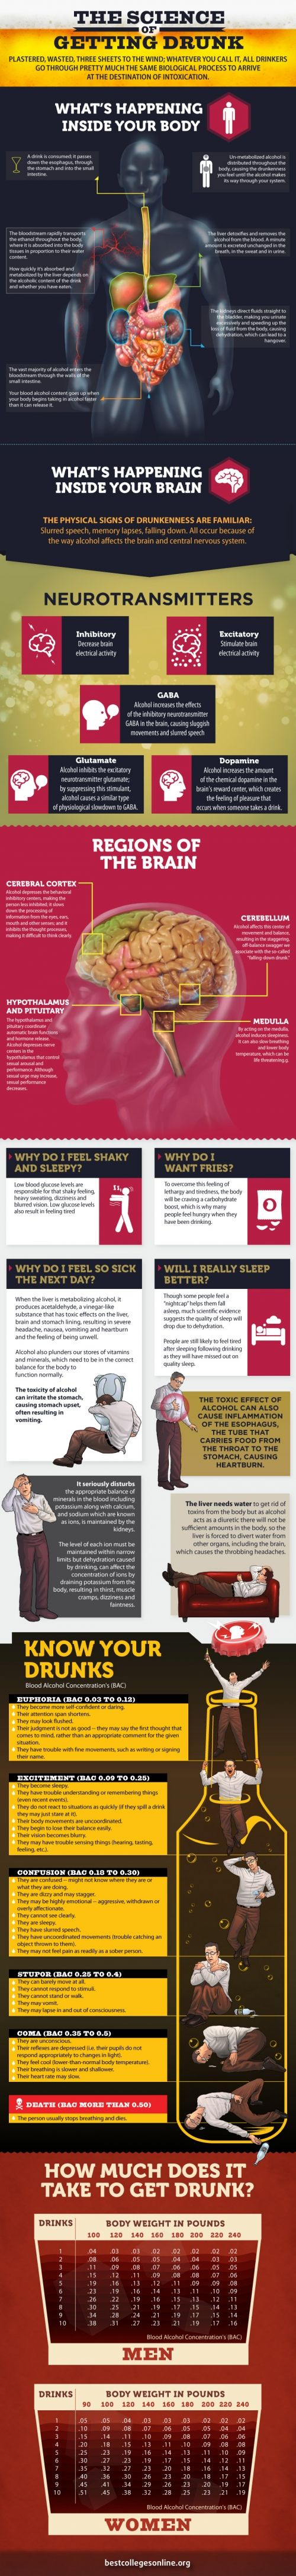 The Science of Getting Drunk (Infographic) | Negative Effects Of Alcohol